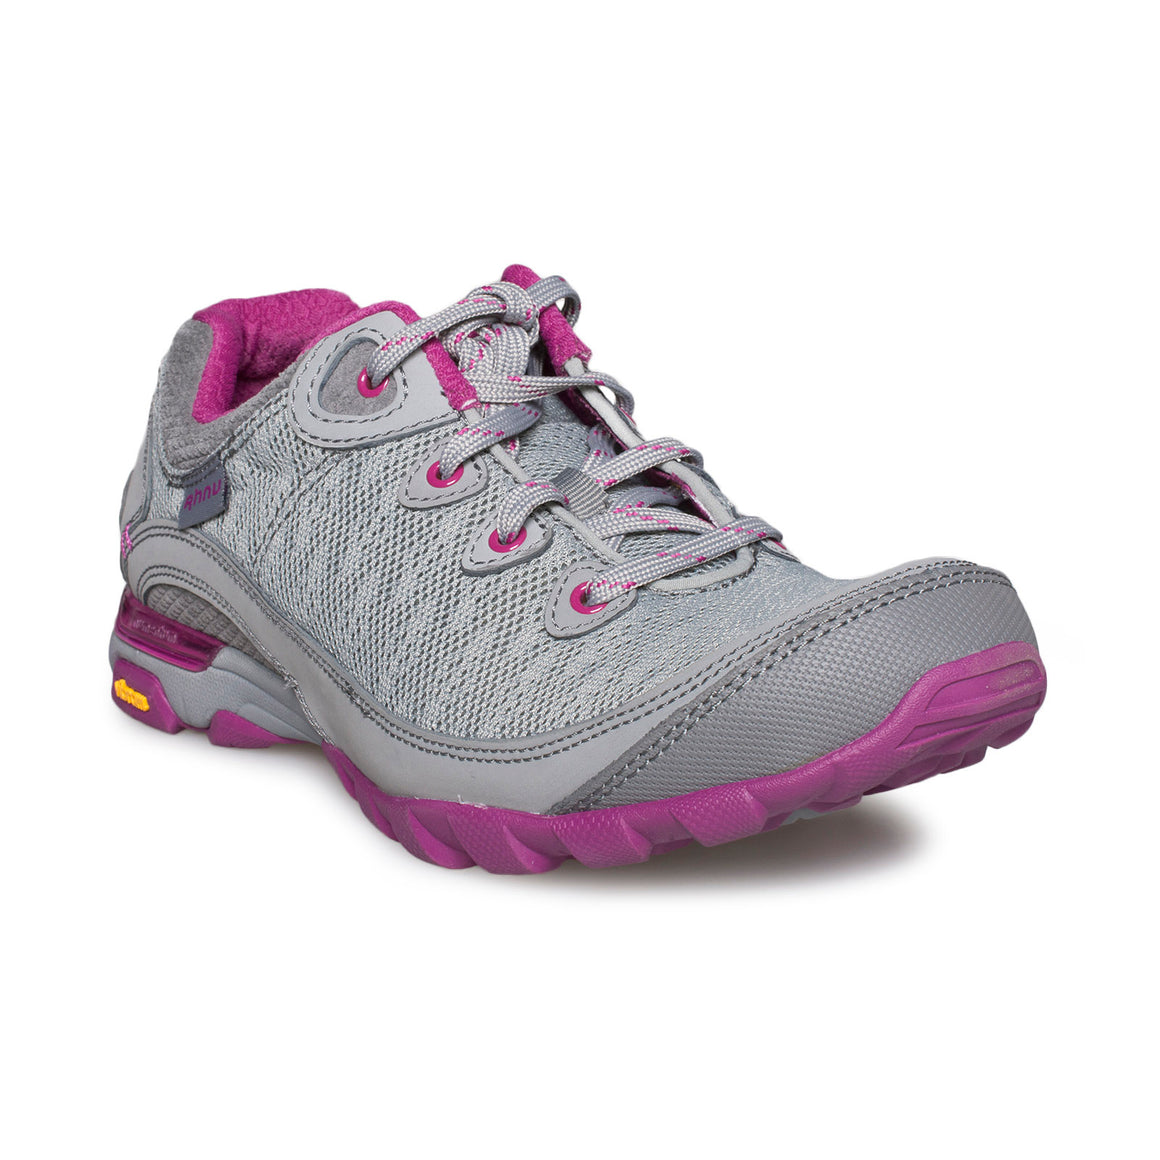 Ahnu Sugarpine II Air Mesh Wild Dove Shoes - Women's